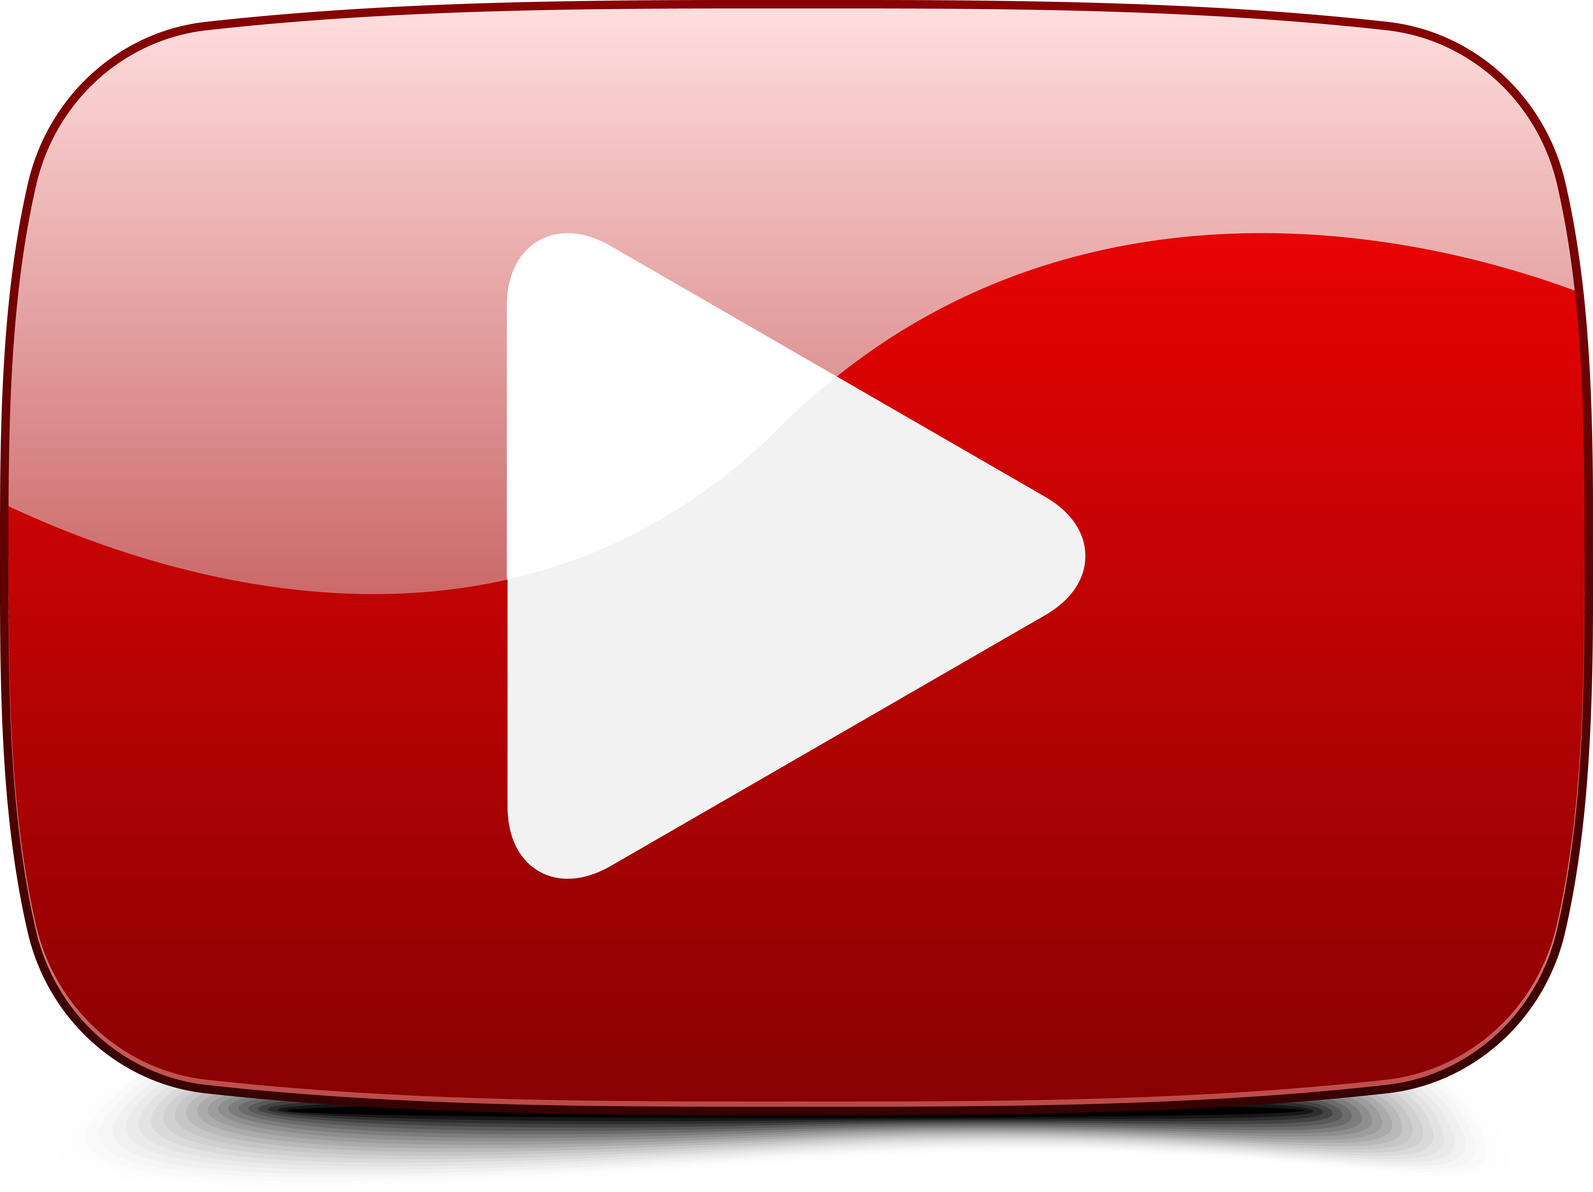 Clipart youtube videos clipart free library Free Youtube Cliparts, Download Free Clip Art, Free Clip Art on ... clipart free library